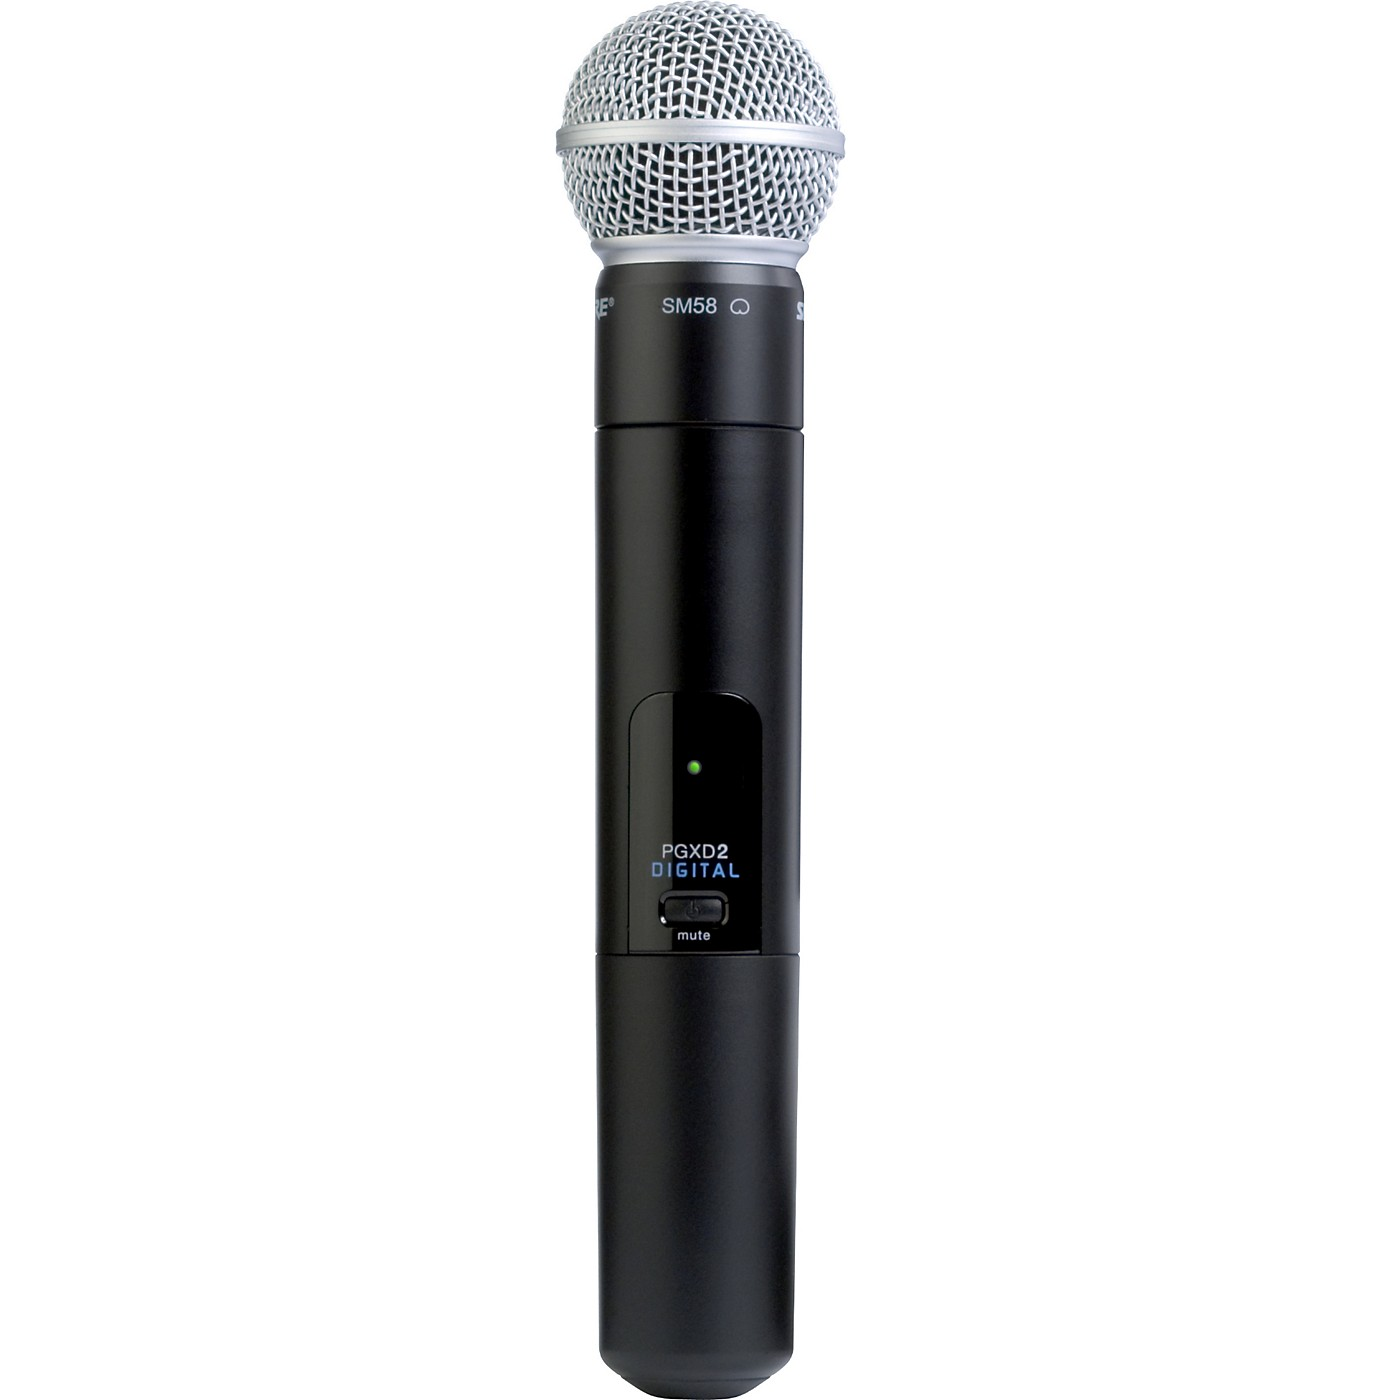 Shure PGXD2/SM58 Handheld Transmitter with SM58 Mic thumbnail